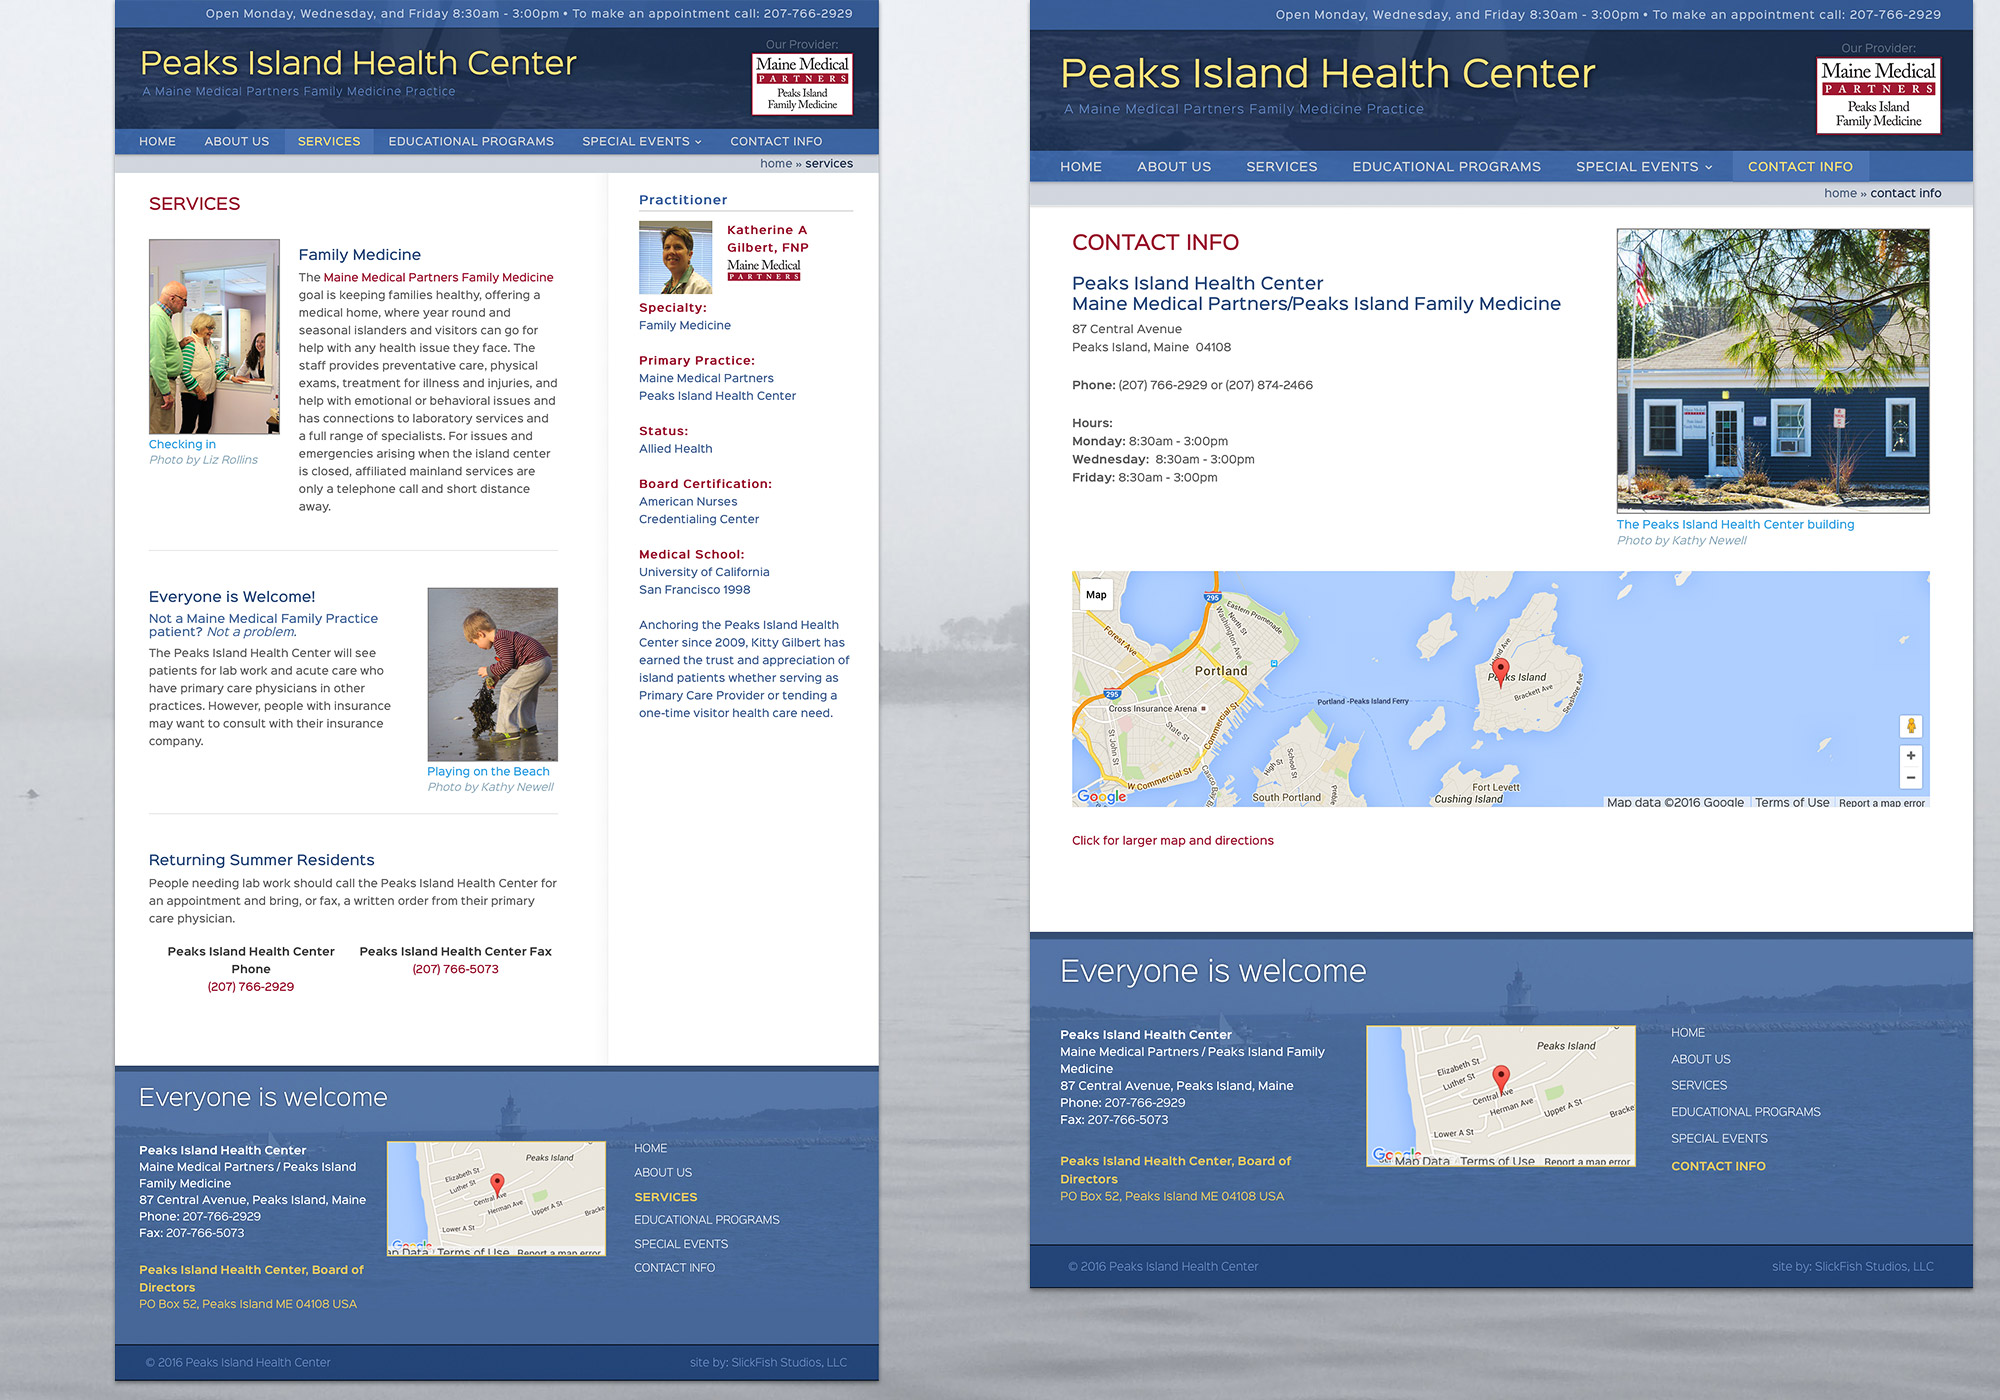 A split composite image of the Peaks Island Health Center, Contact, and Services pages. The website was designed and built by Portland, Maine creative website design company, SlickFish Studios.